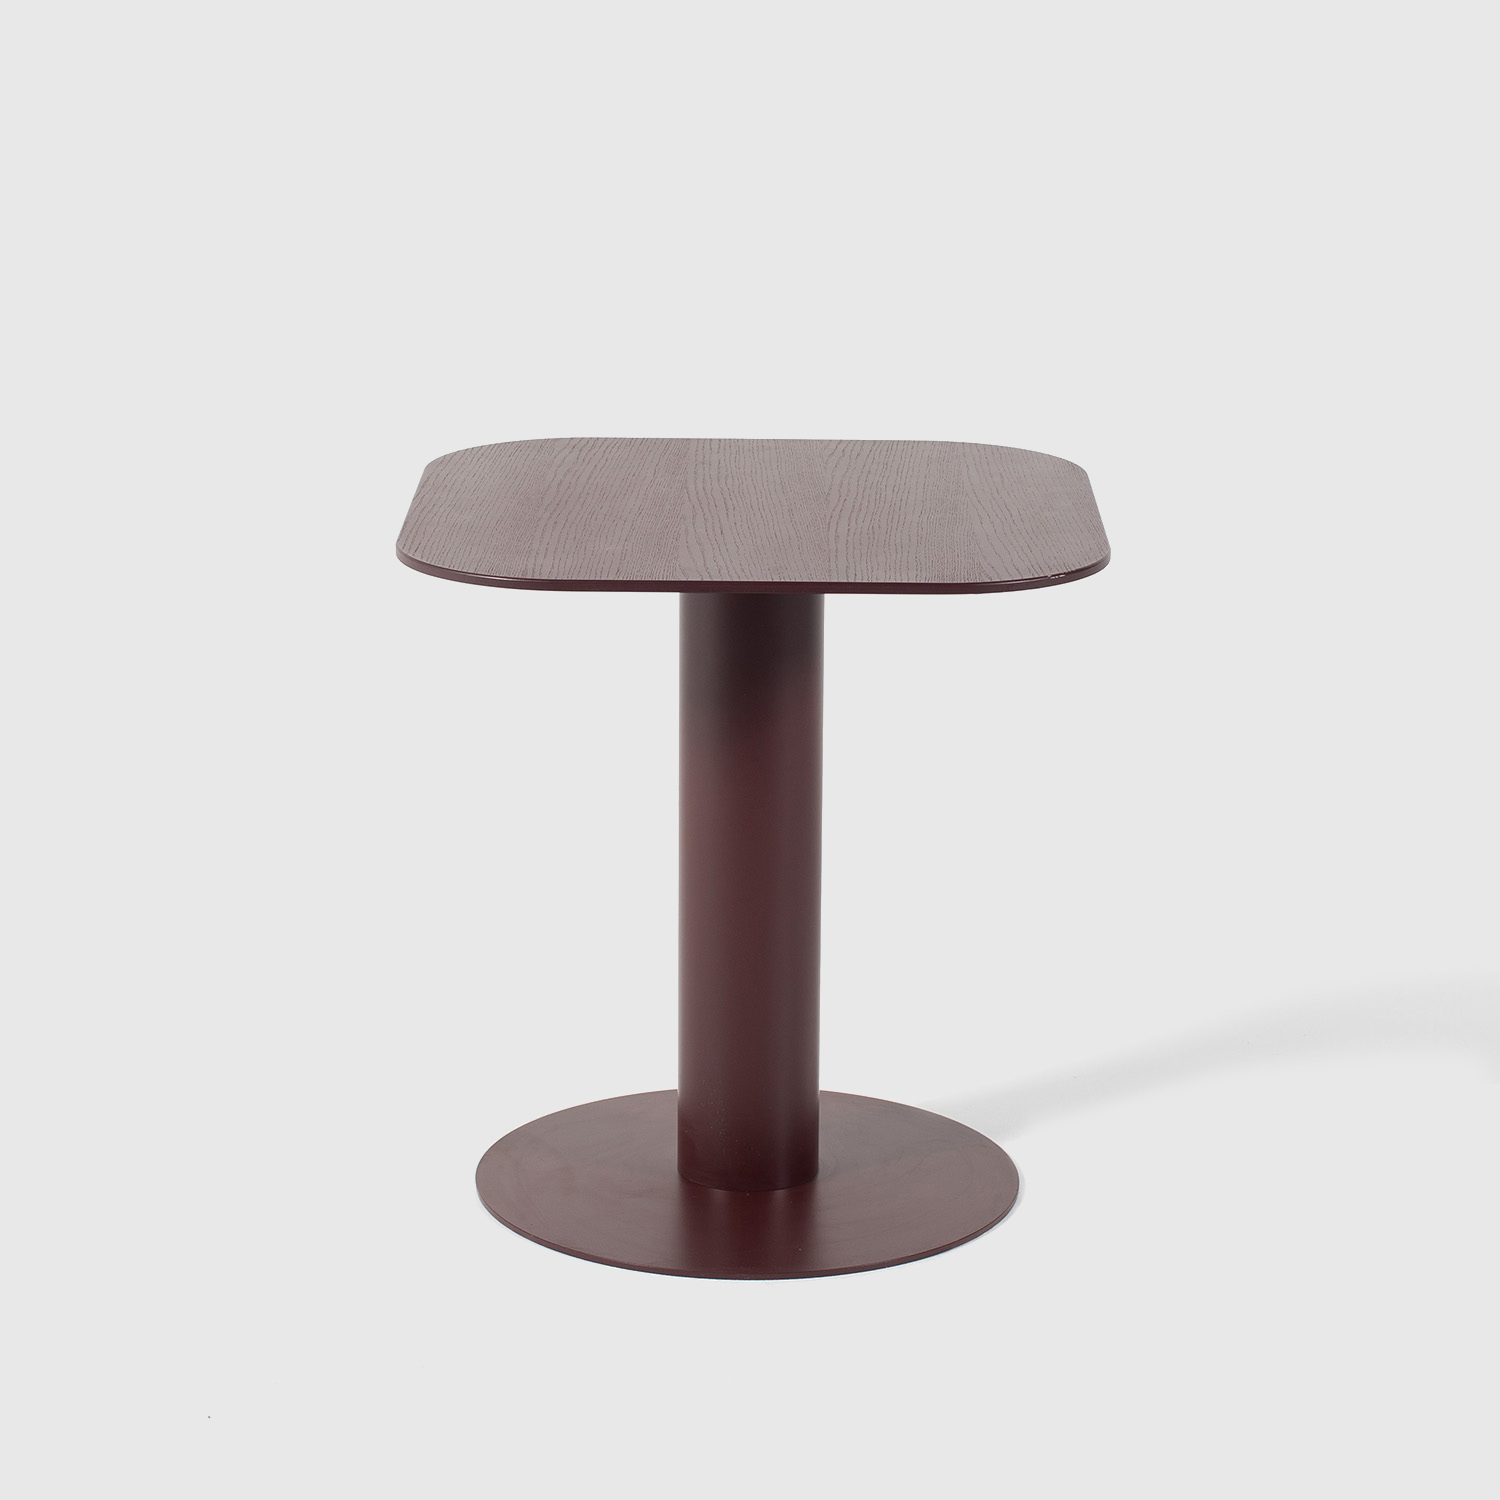 Cluster Table Collection (2015)